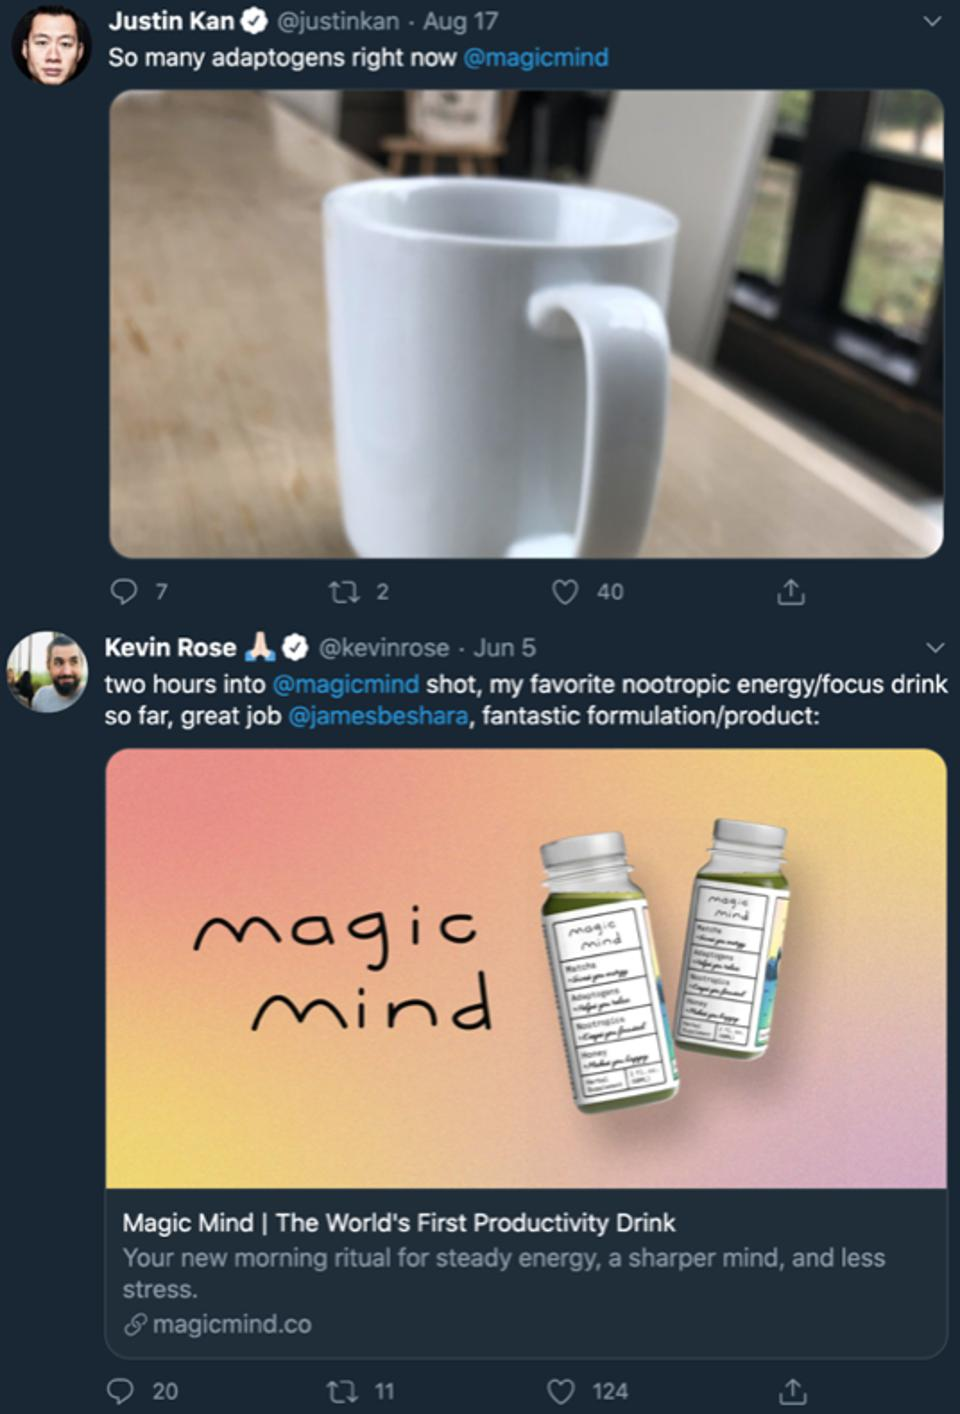 Justin Kan and Kevin Rose tweeting about Magic Mind in 2020